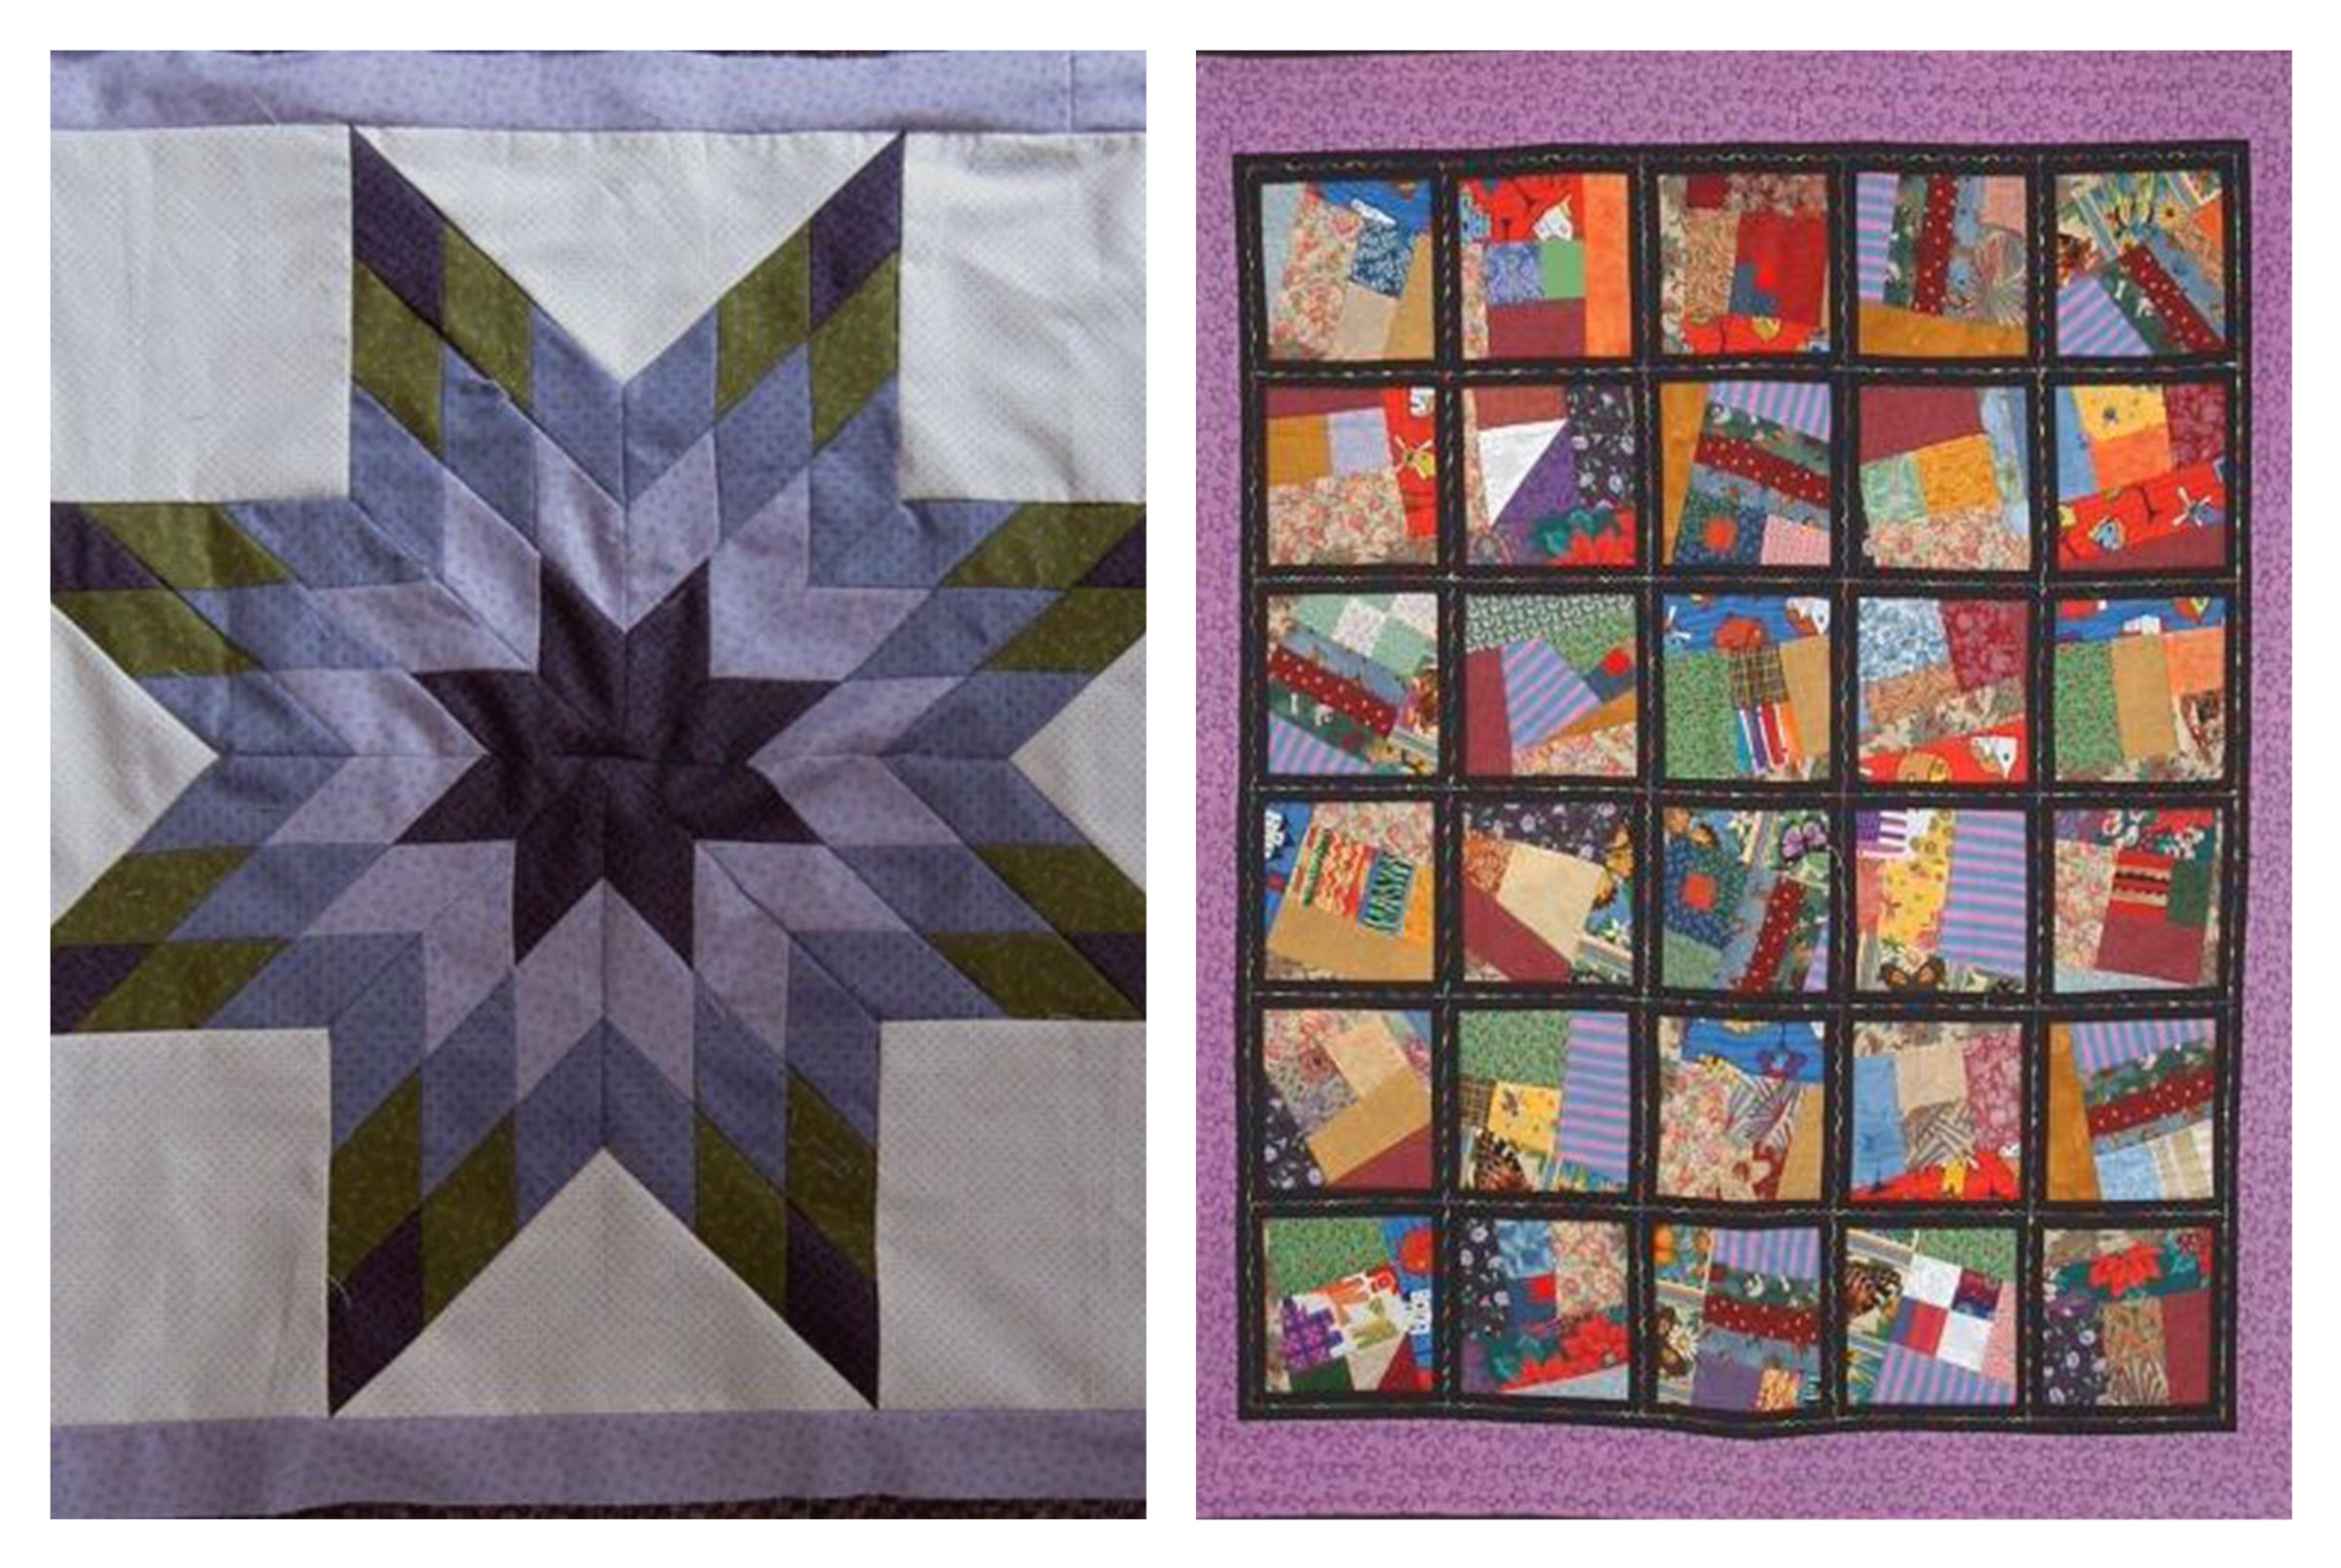 A Patchwork and Quilting Weekend in Hampshire, November 2019